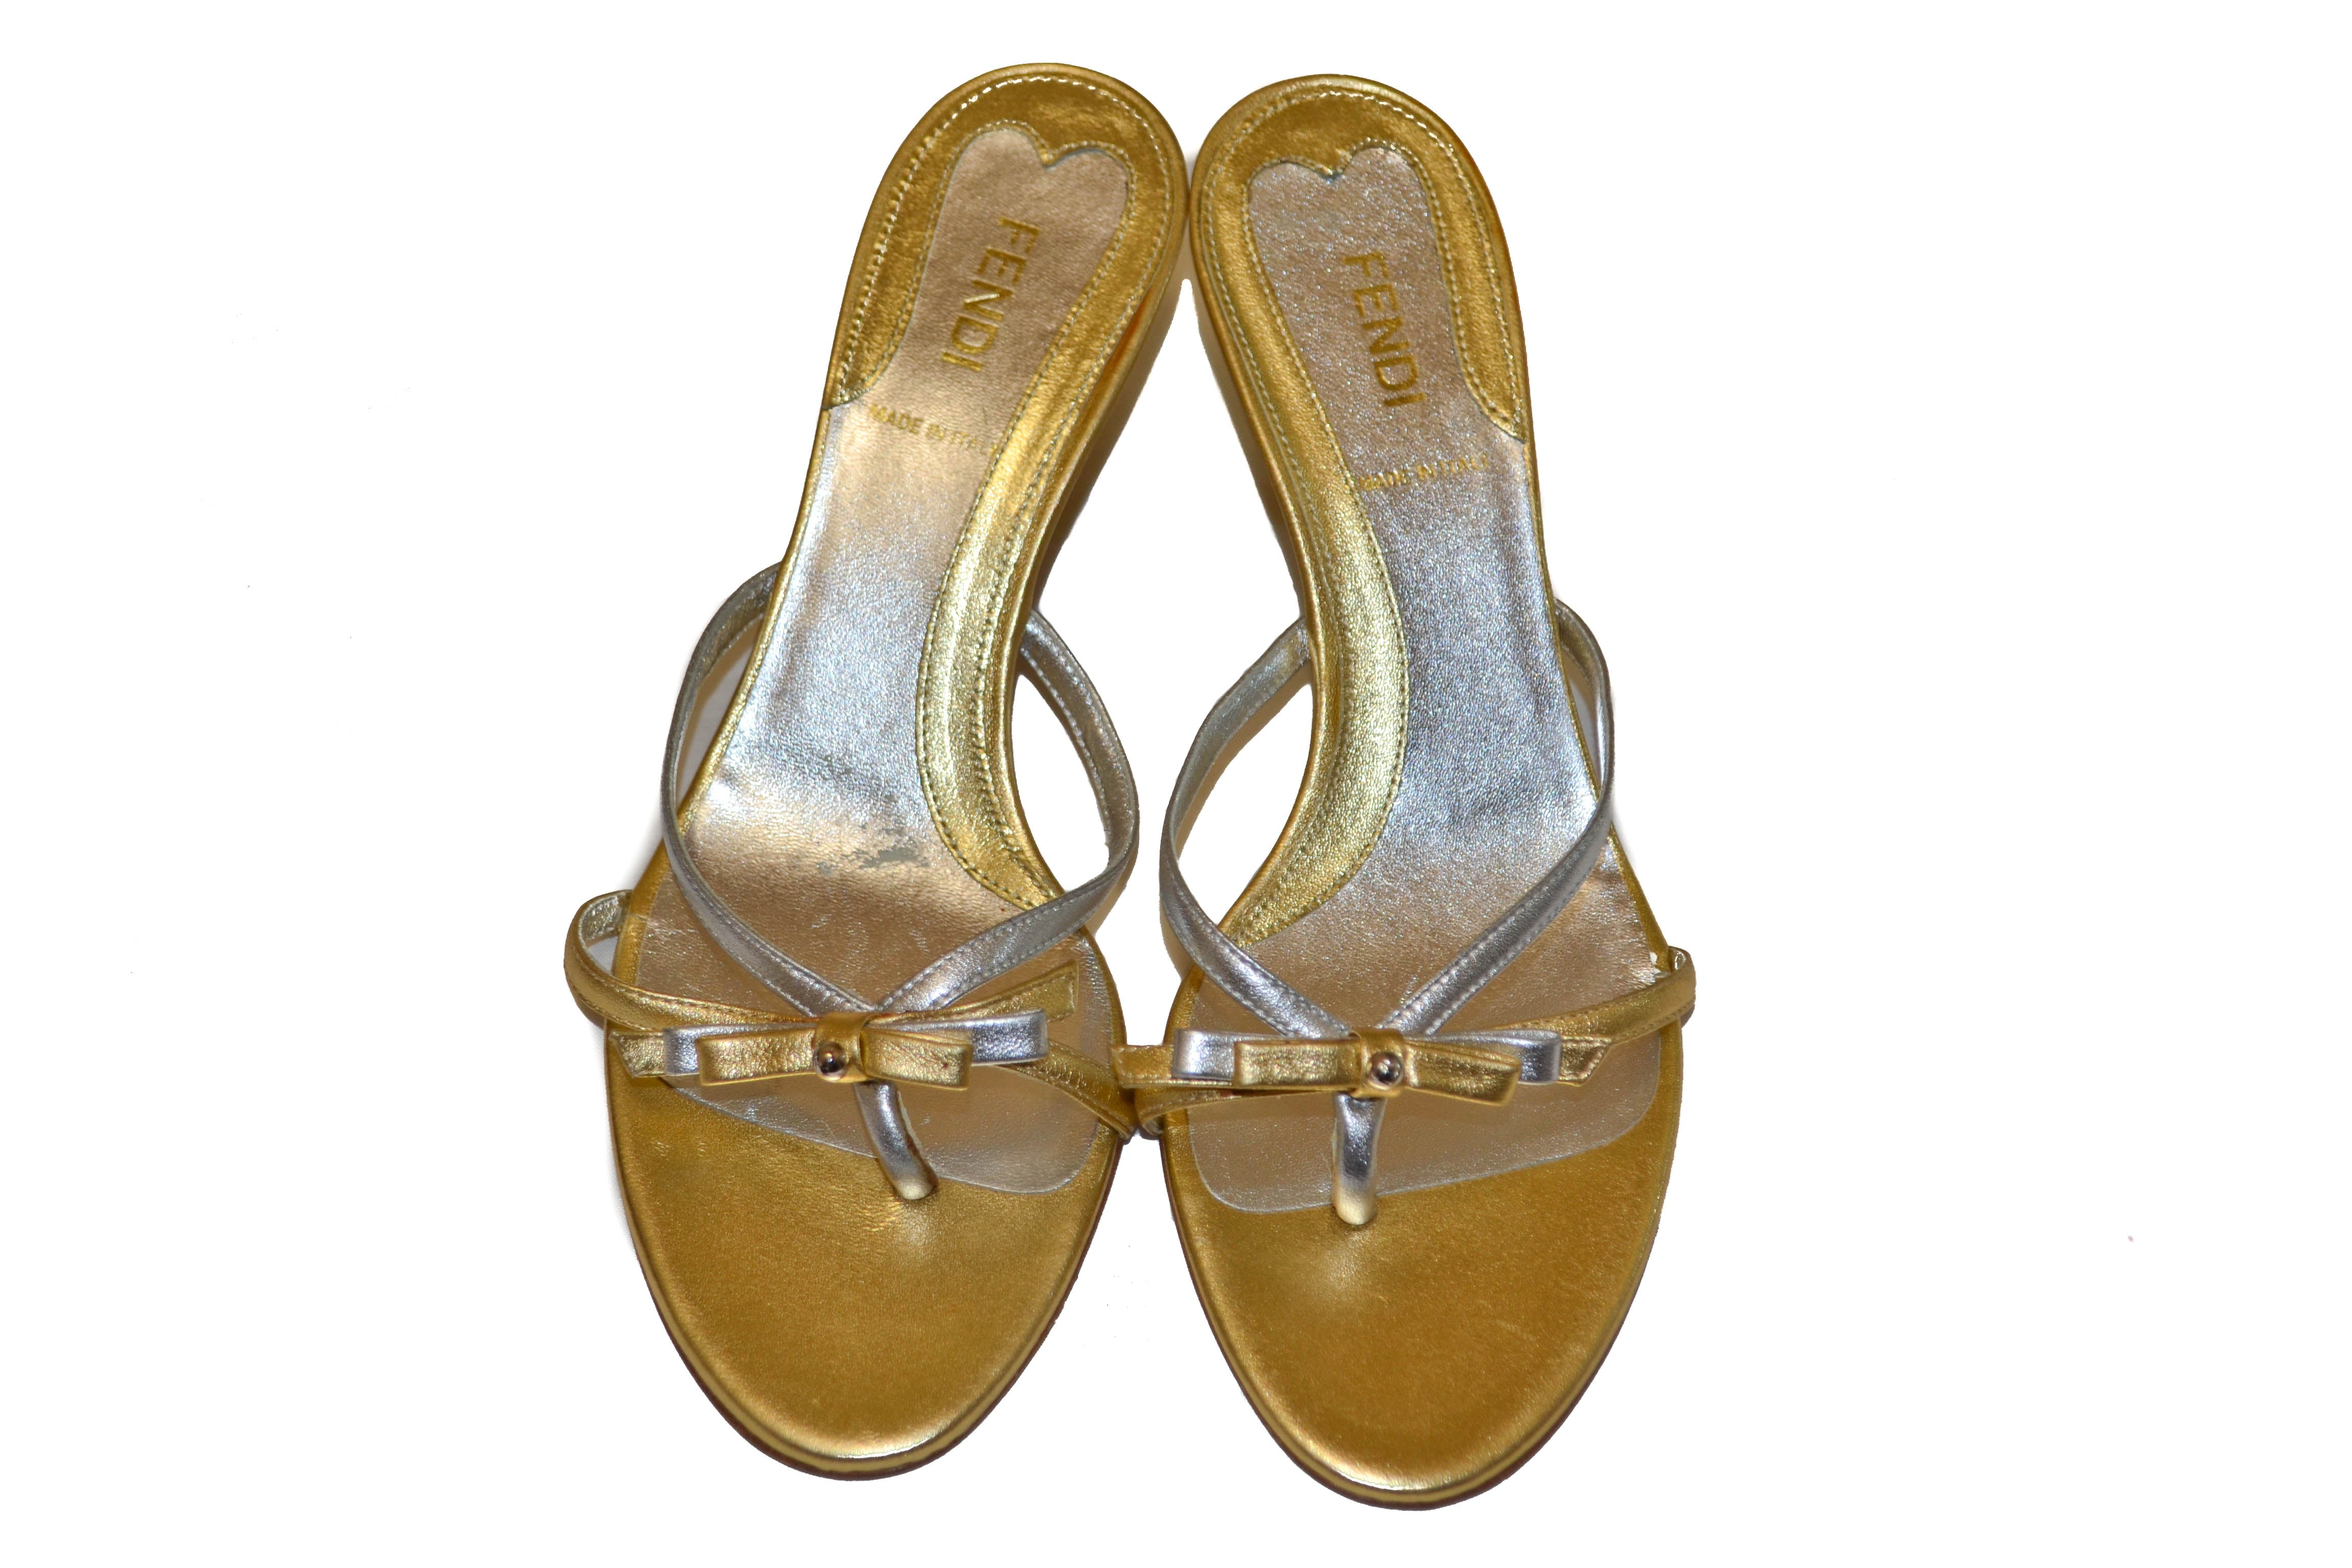 Authentic Fendi Metallic Gold and Silver Ribbon Bow Sandals Shoes Size 37.5